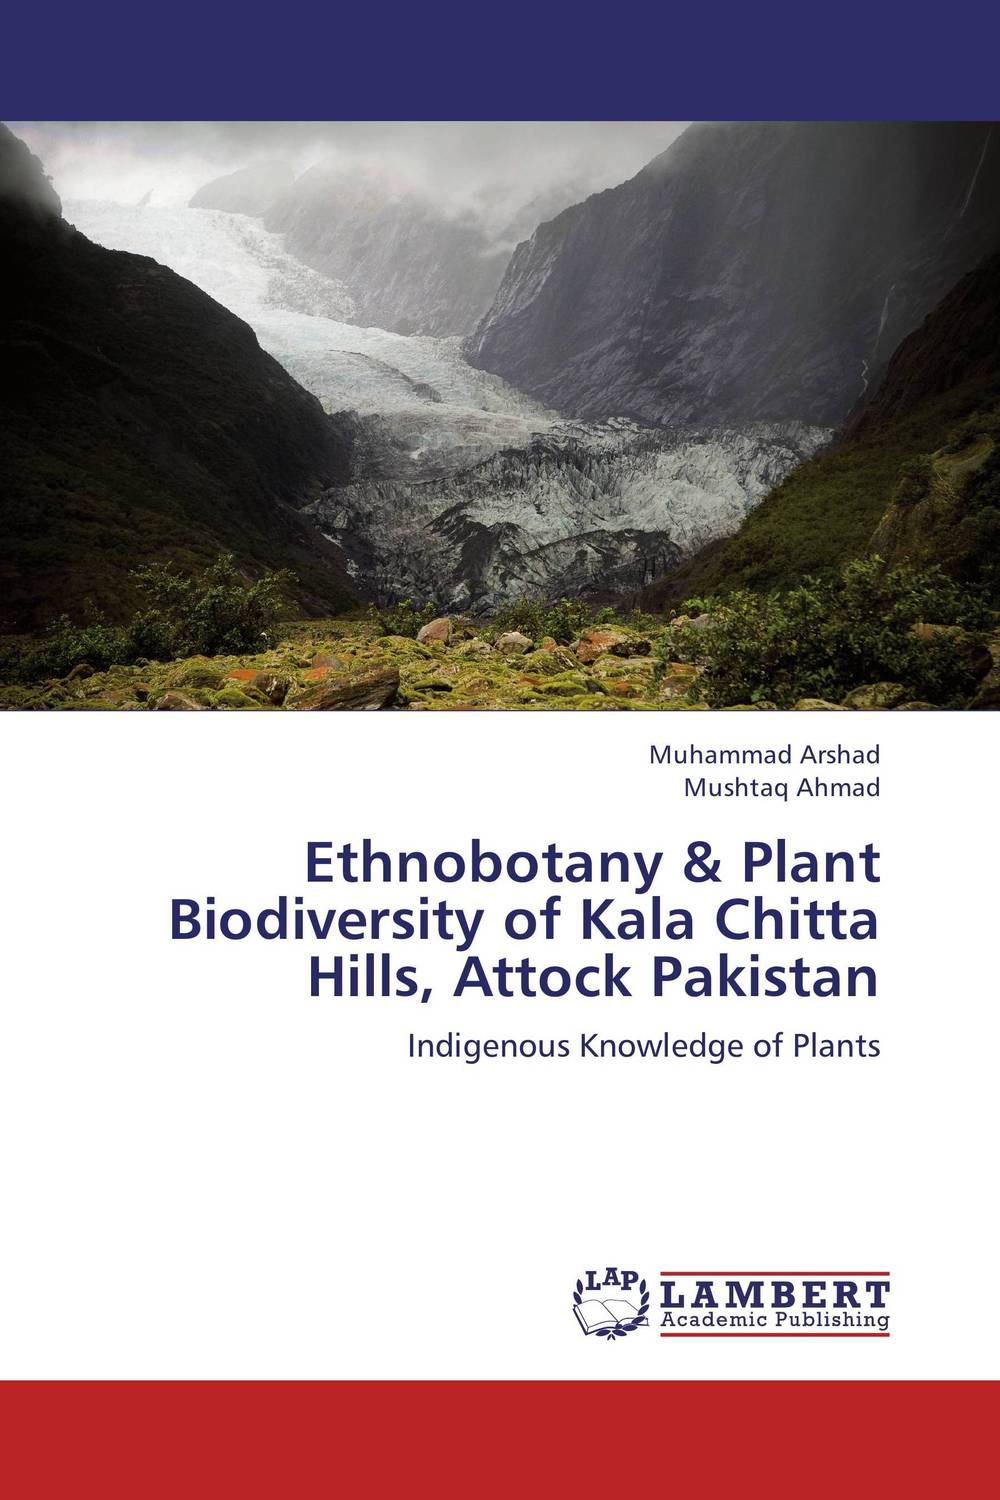 Ethnobotany & Plant Biodiversity of Kala Chitta Hills, Attock Pakistan retinopathy among undiagnosed patients of pakistan